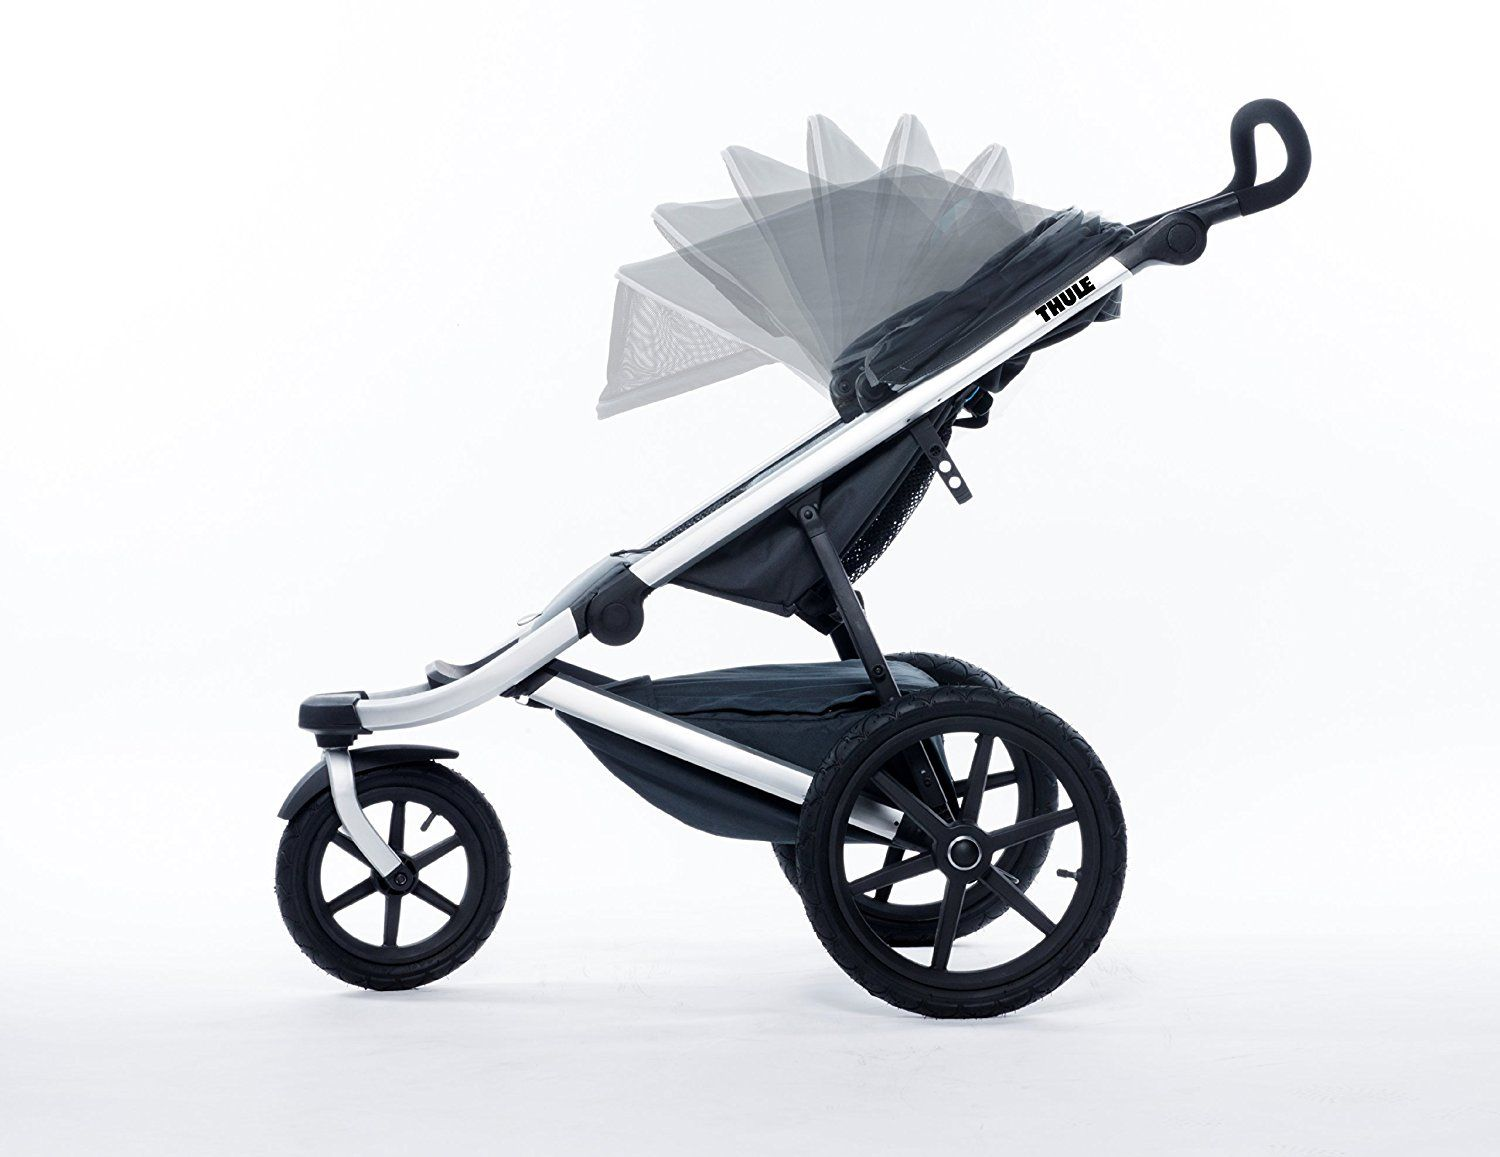 61dda66be Amazon.com: Thule Urban Glide - Jogging Stroller- Dark Shadow: Baby ...